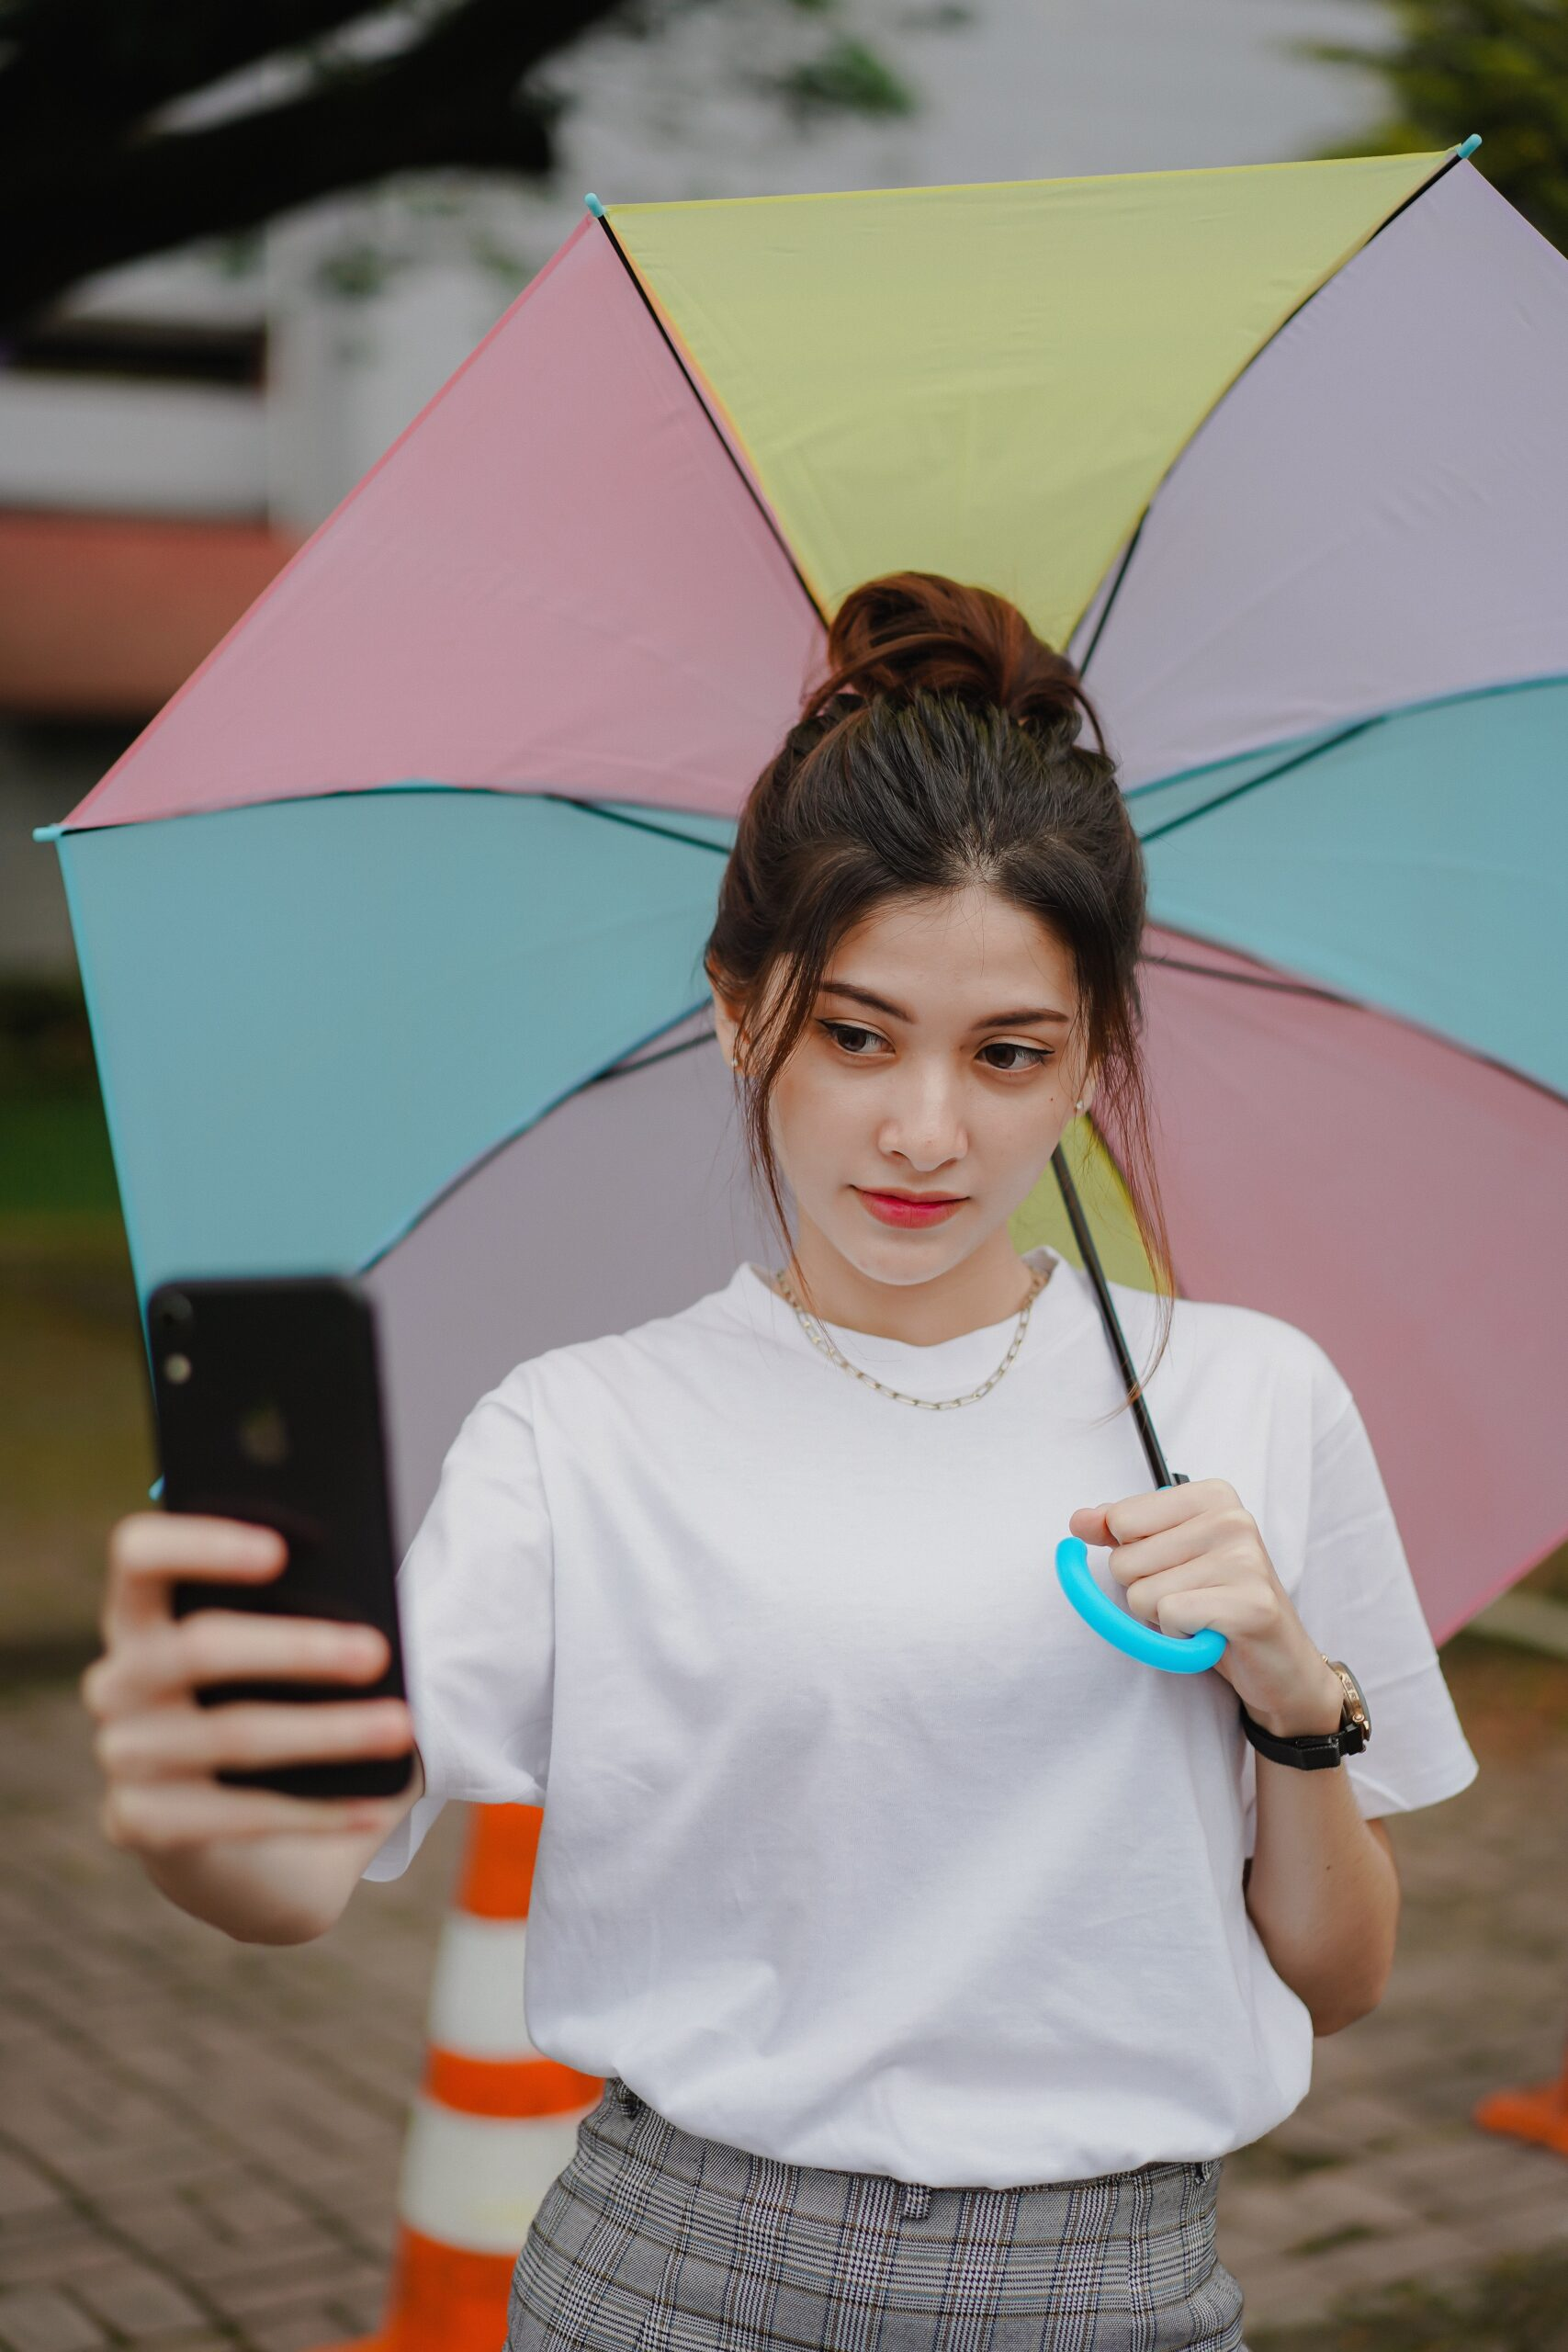 A girl with an umbrella takes a selfie with a phone.